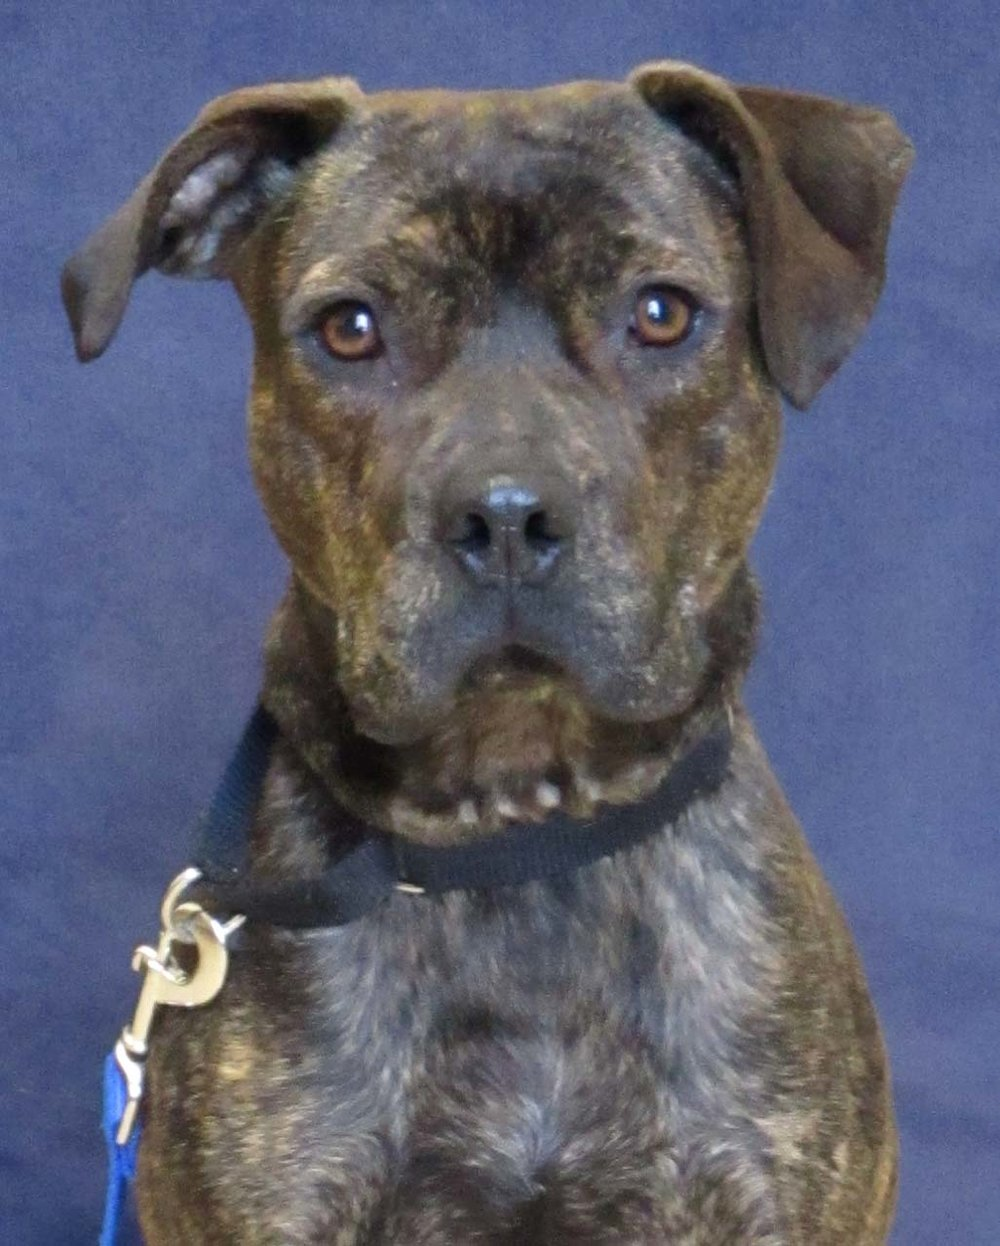 Ned is a young 4-year-old Plotthound and Pitbull Mix. He needs a home with older teens because he is unsure of small children. A home that would have the time and energy to play with him would be ideal. He loves to be out wandering the town, or staying in while playing with toys.